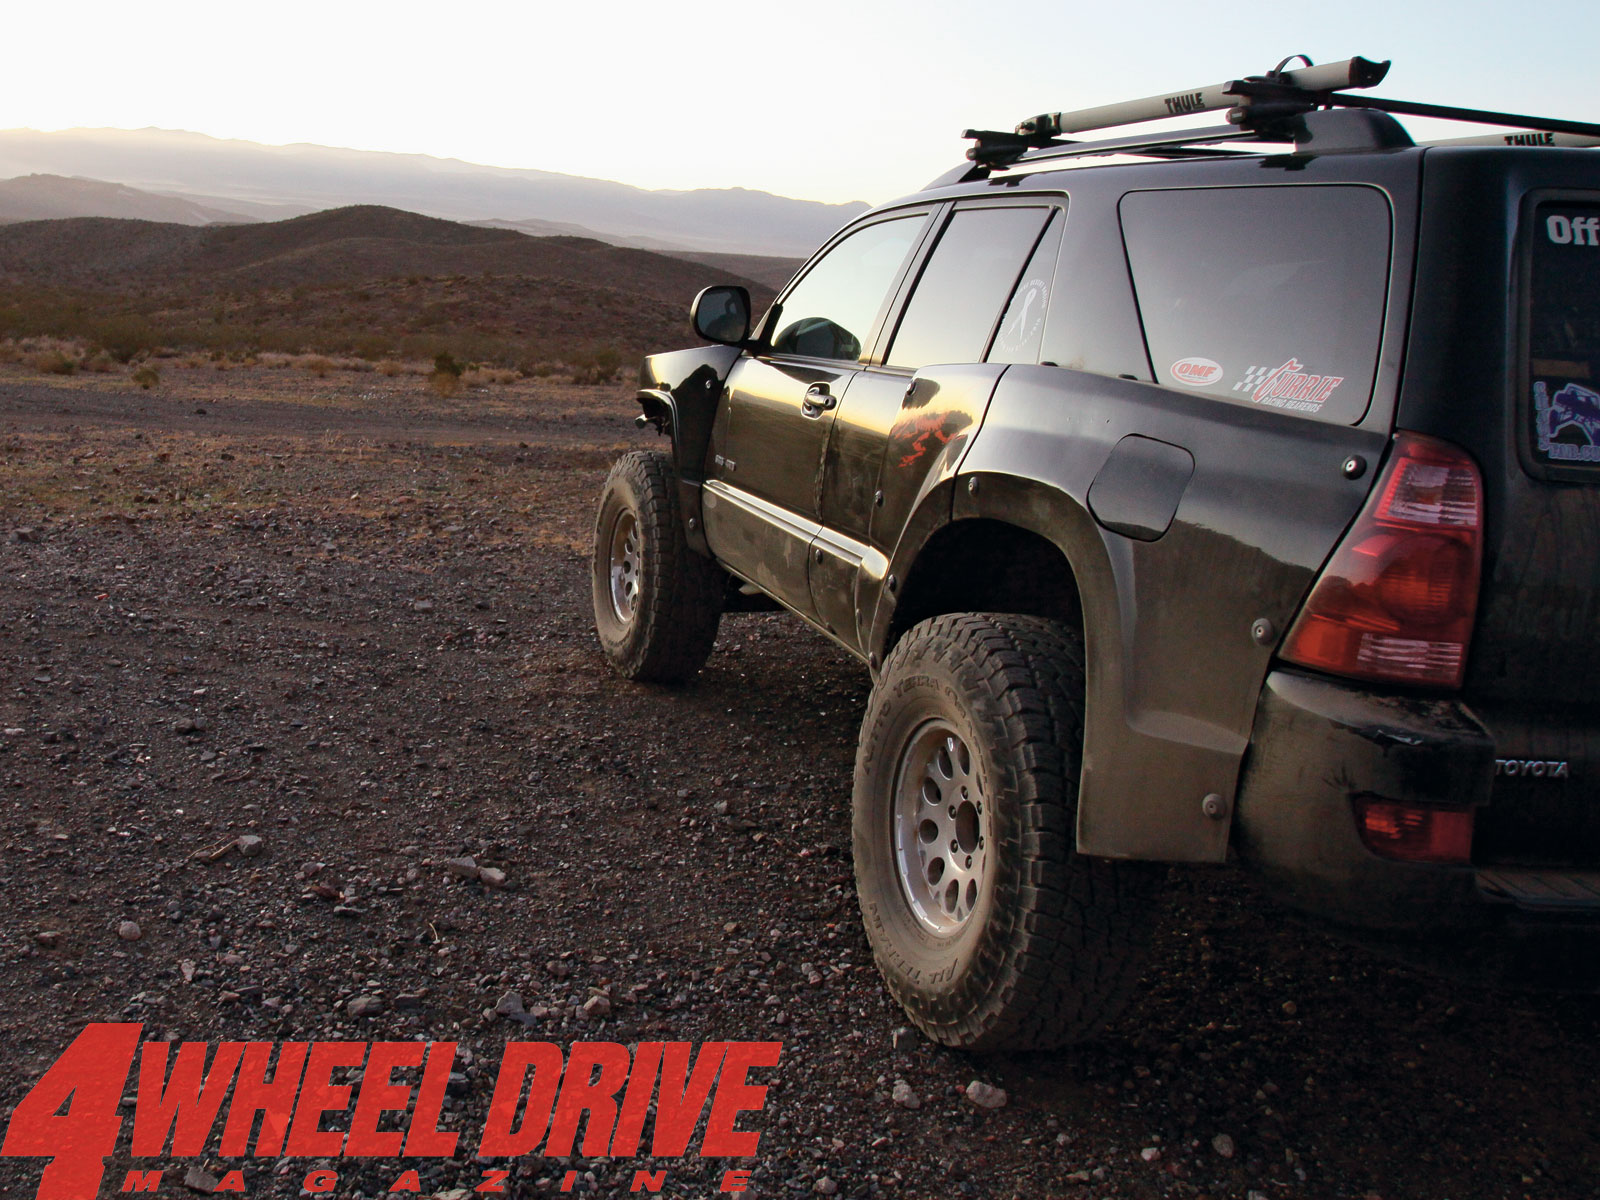 4 Wheel Drive Desktop Wallpaper July 2011 2004 Toyota 4runner Side Photo 38844498